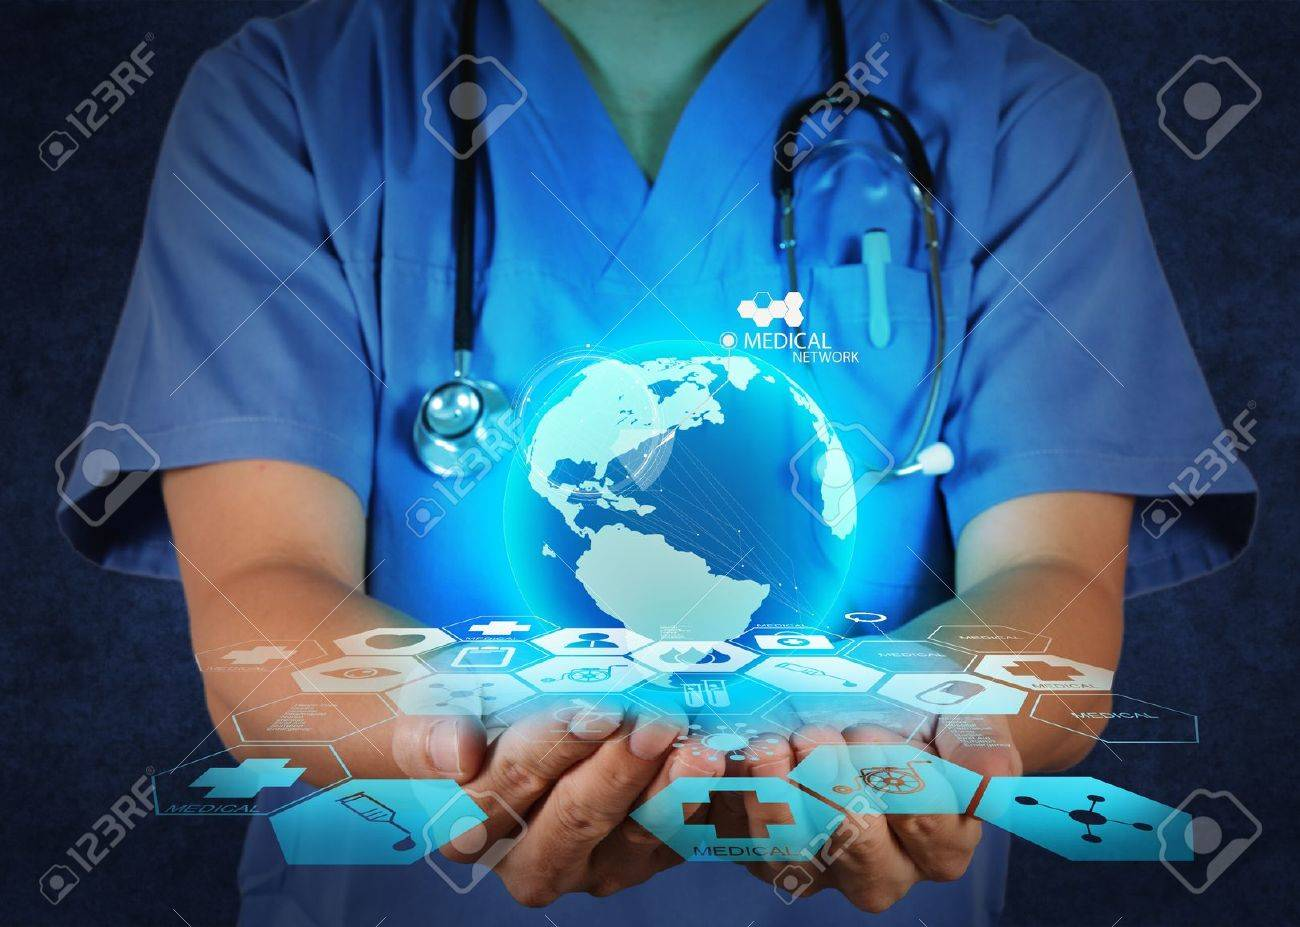 Medical Doctor holding a world globe in her hands as medical network concept Stock Photo - 19646822